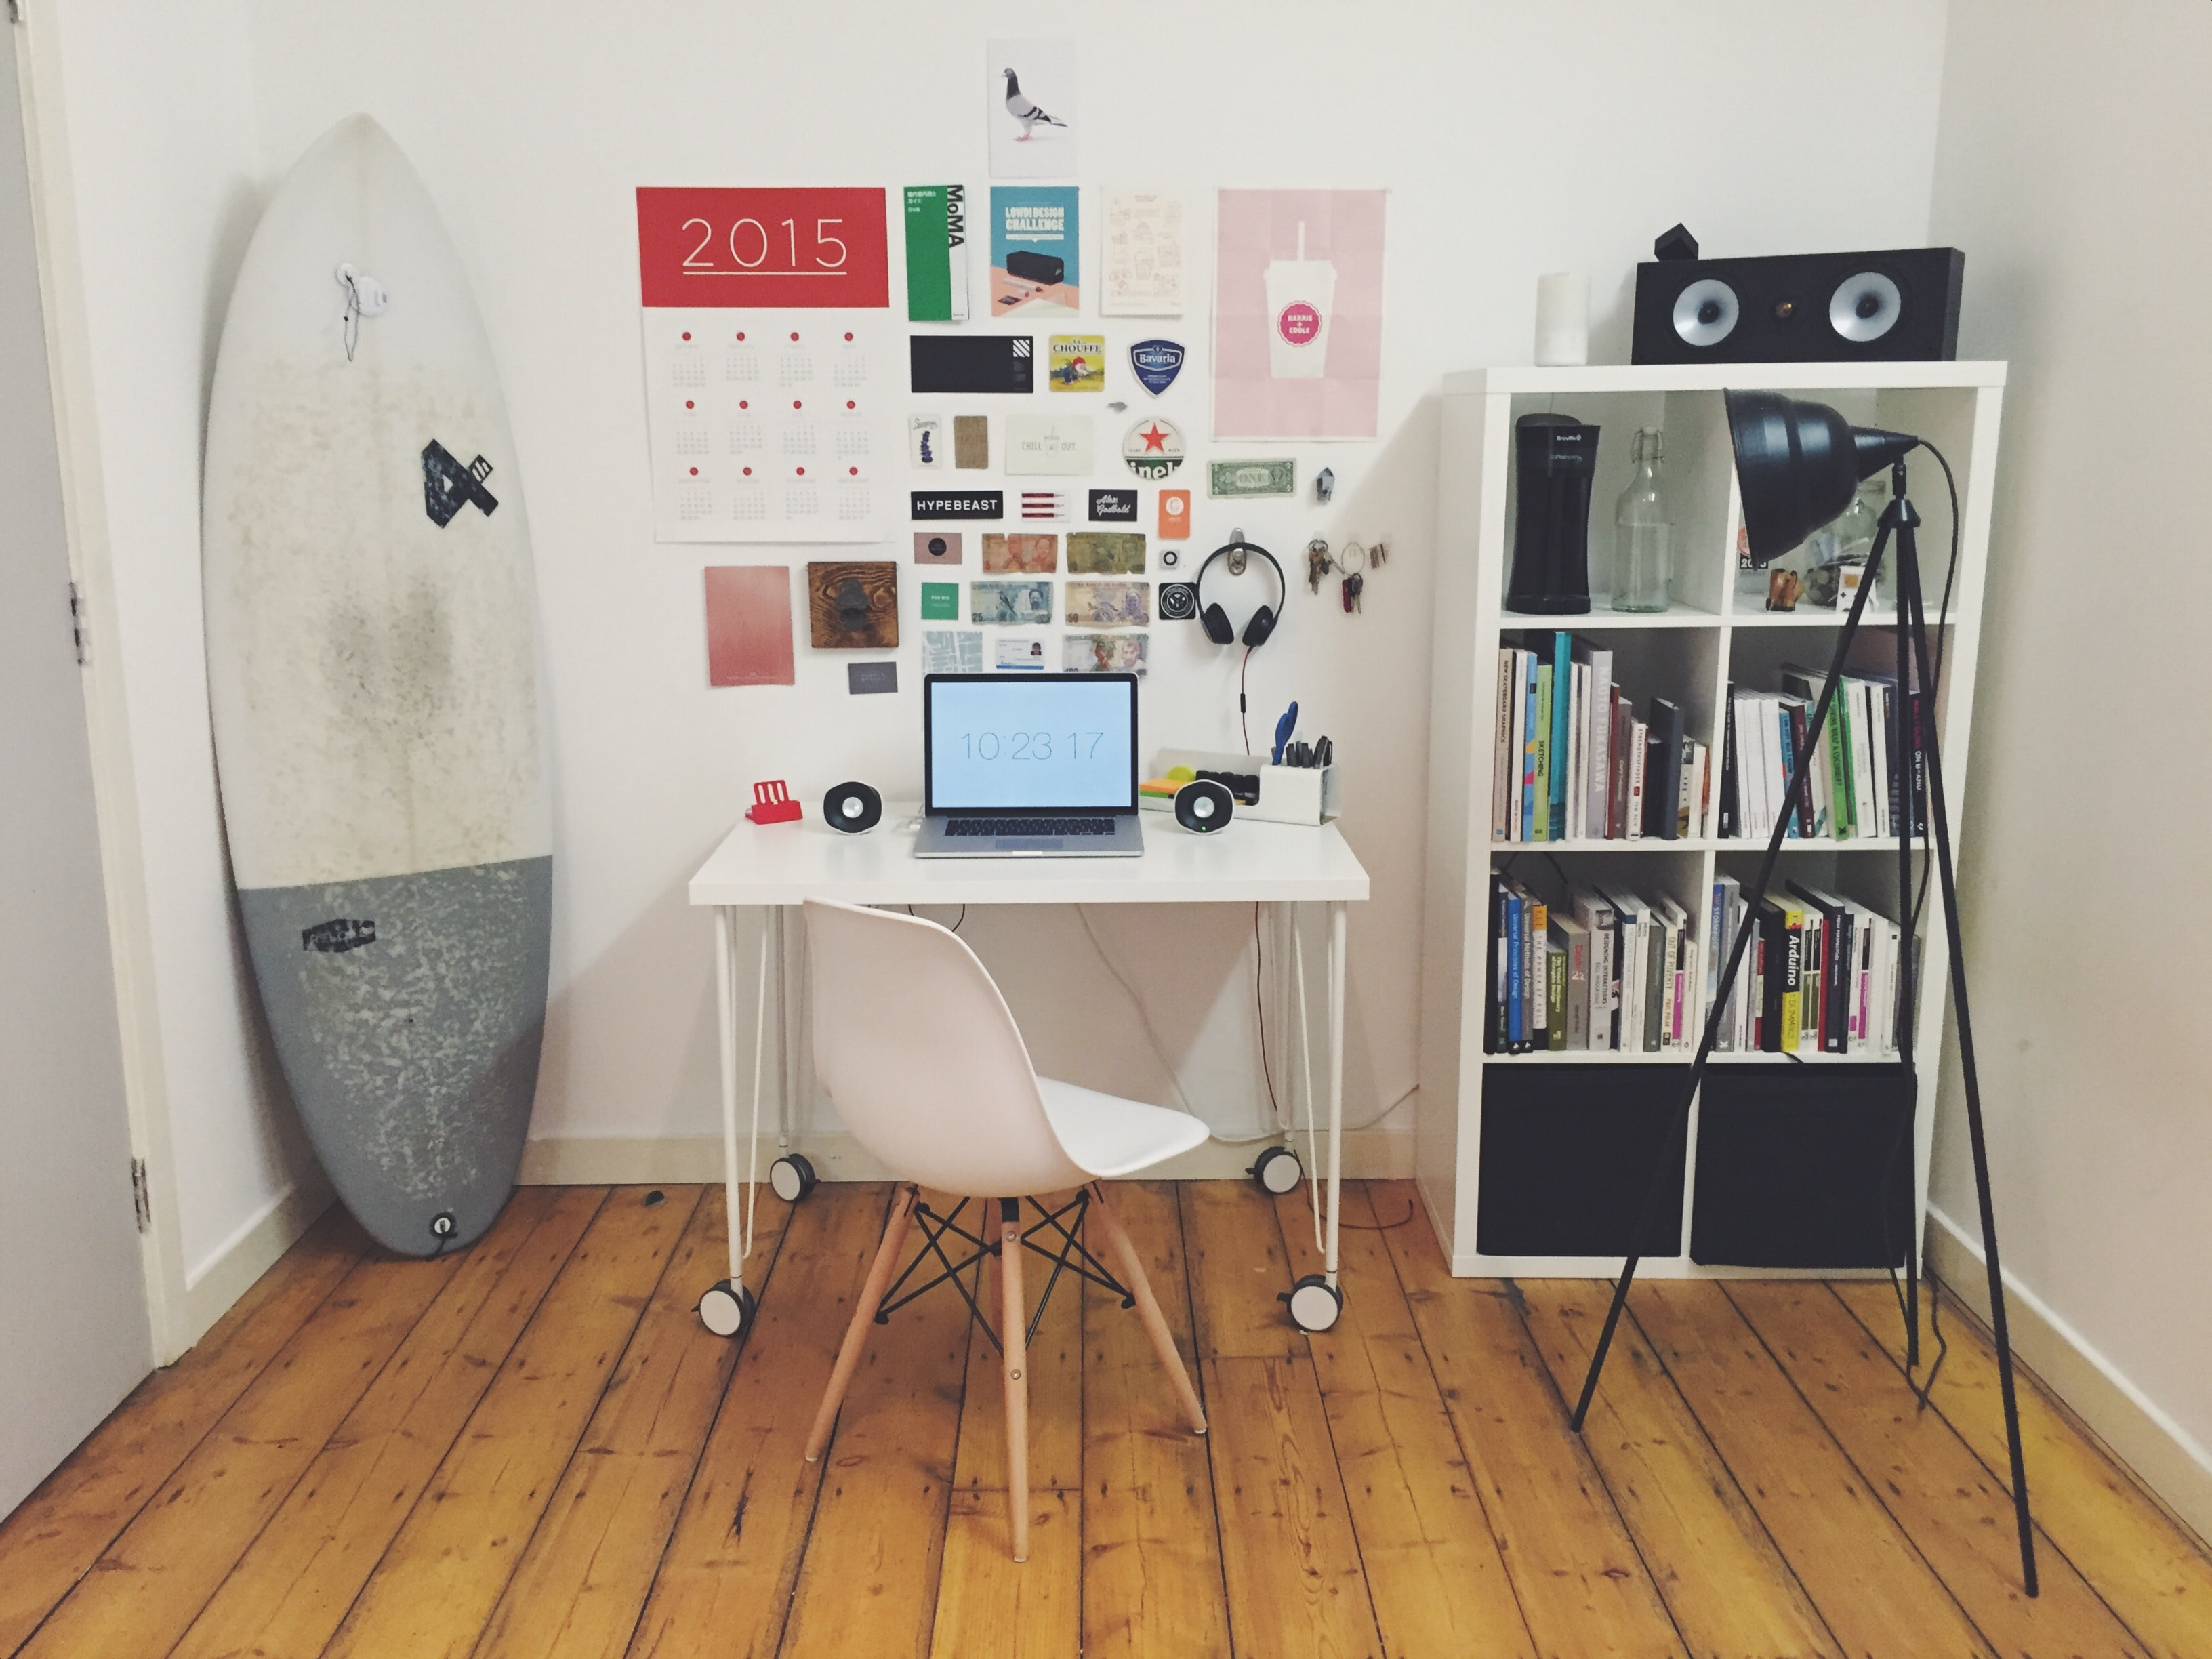 A small home office with a surfing board in the corner next to a desk on wheels